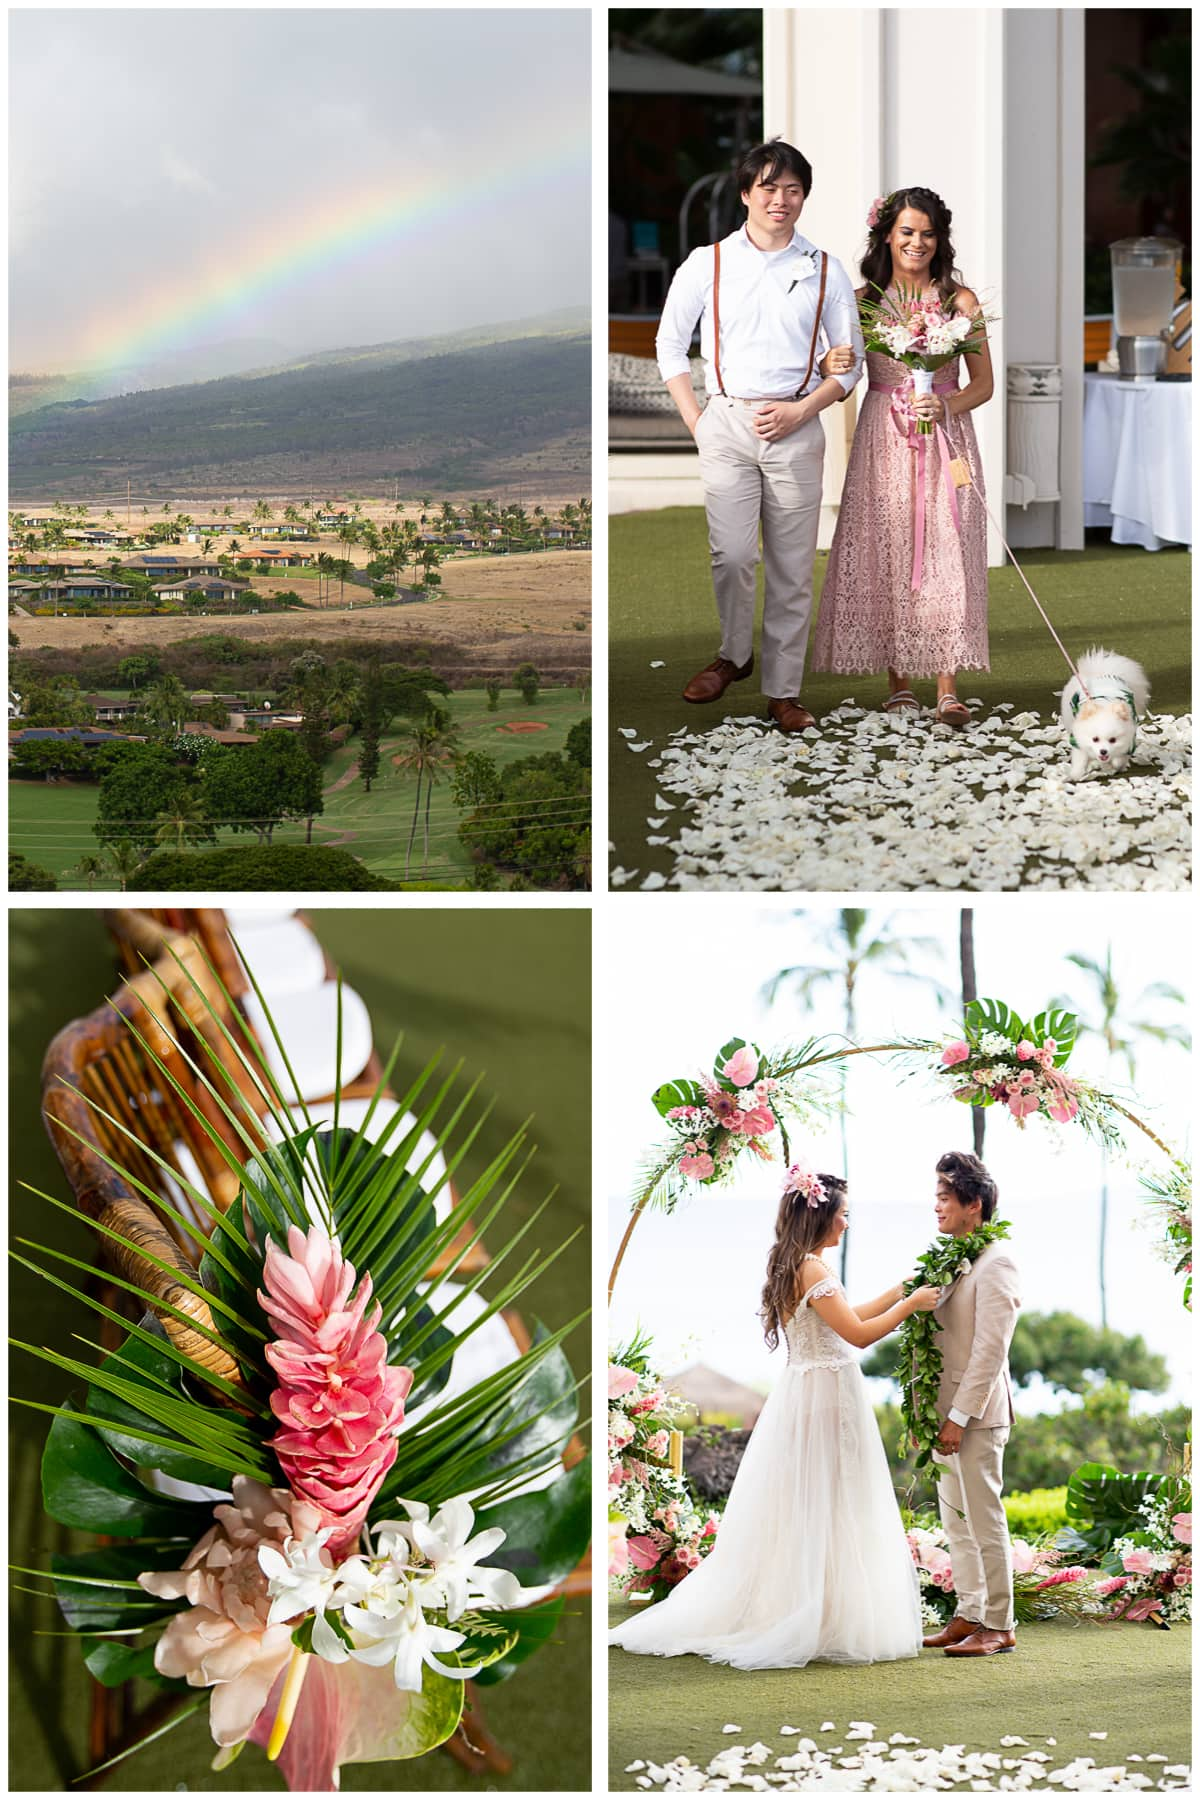 shin lim wedding hyatt maui details rainbow